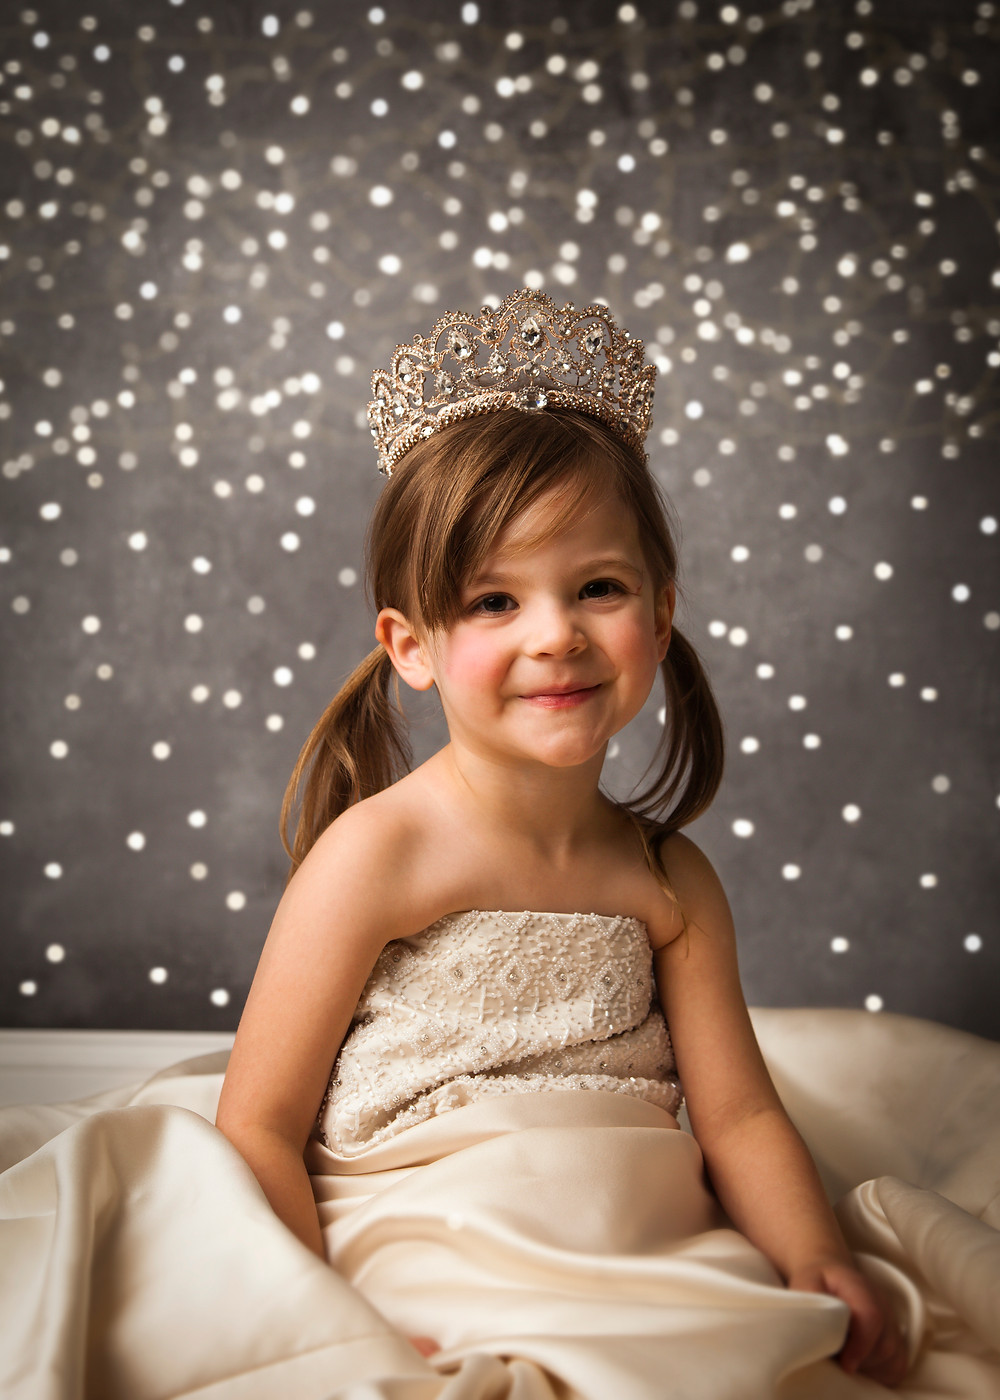 playing dress up in Mommy's wedding dress with a beautiful tiara